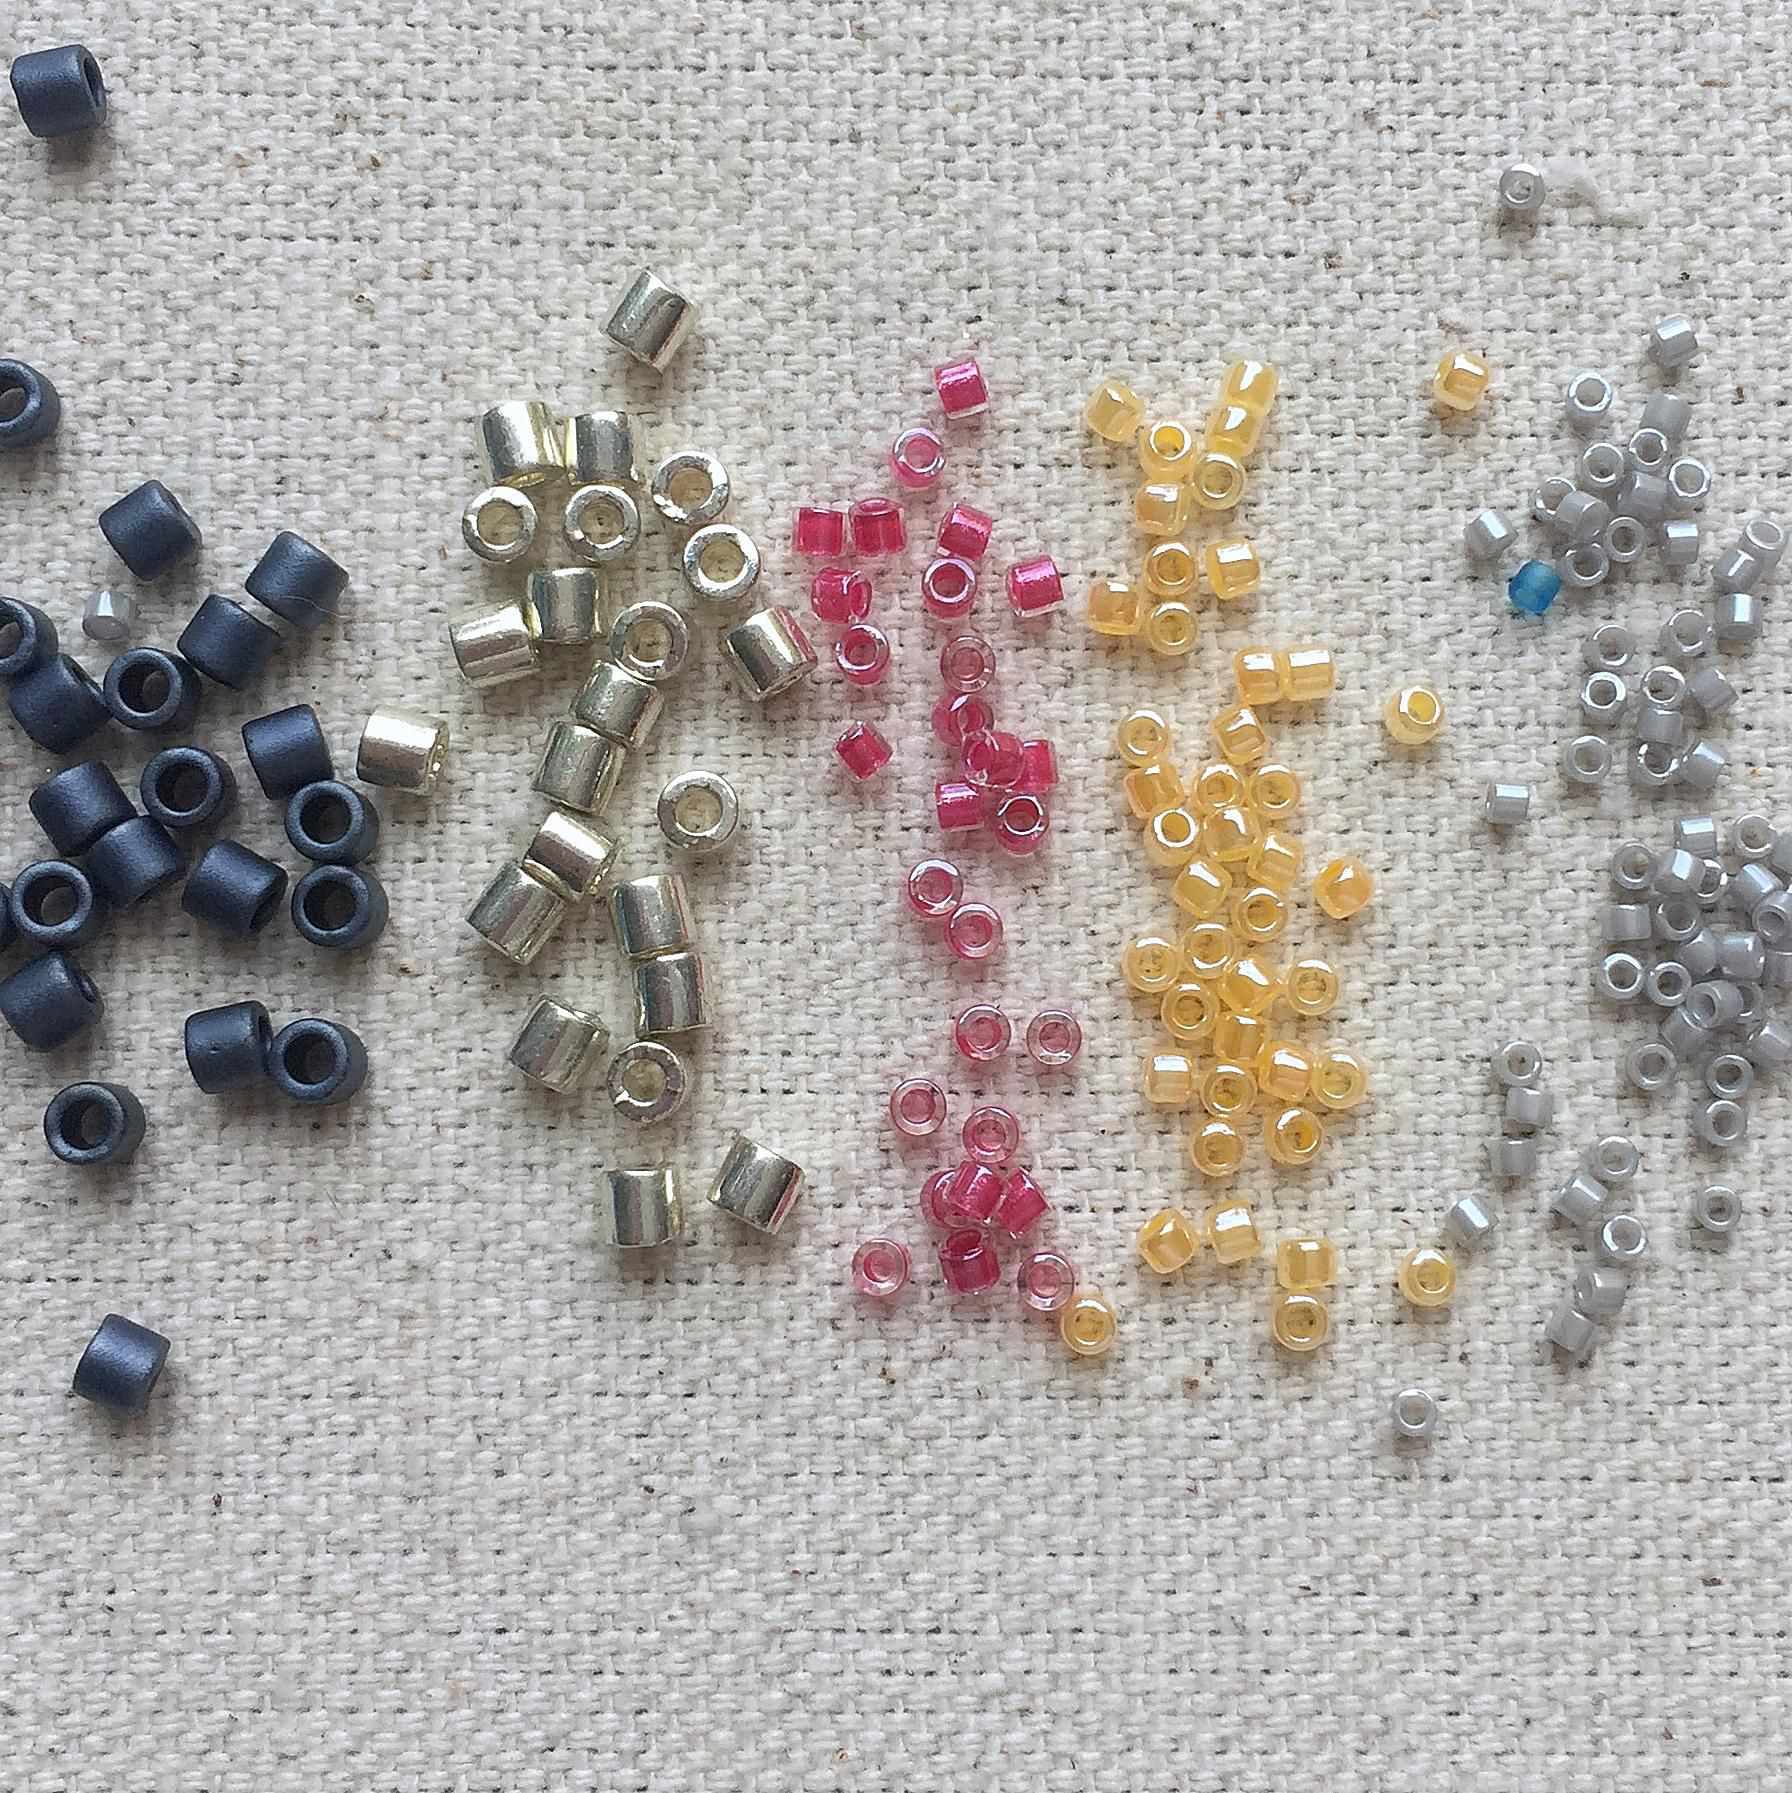 Estimating The Number Of Seed Beads You Need